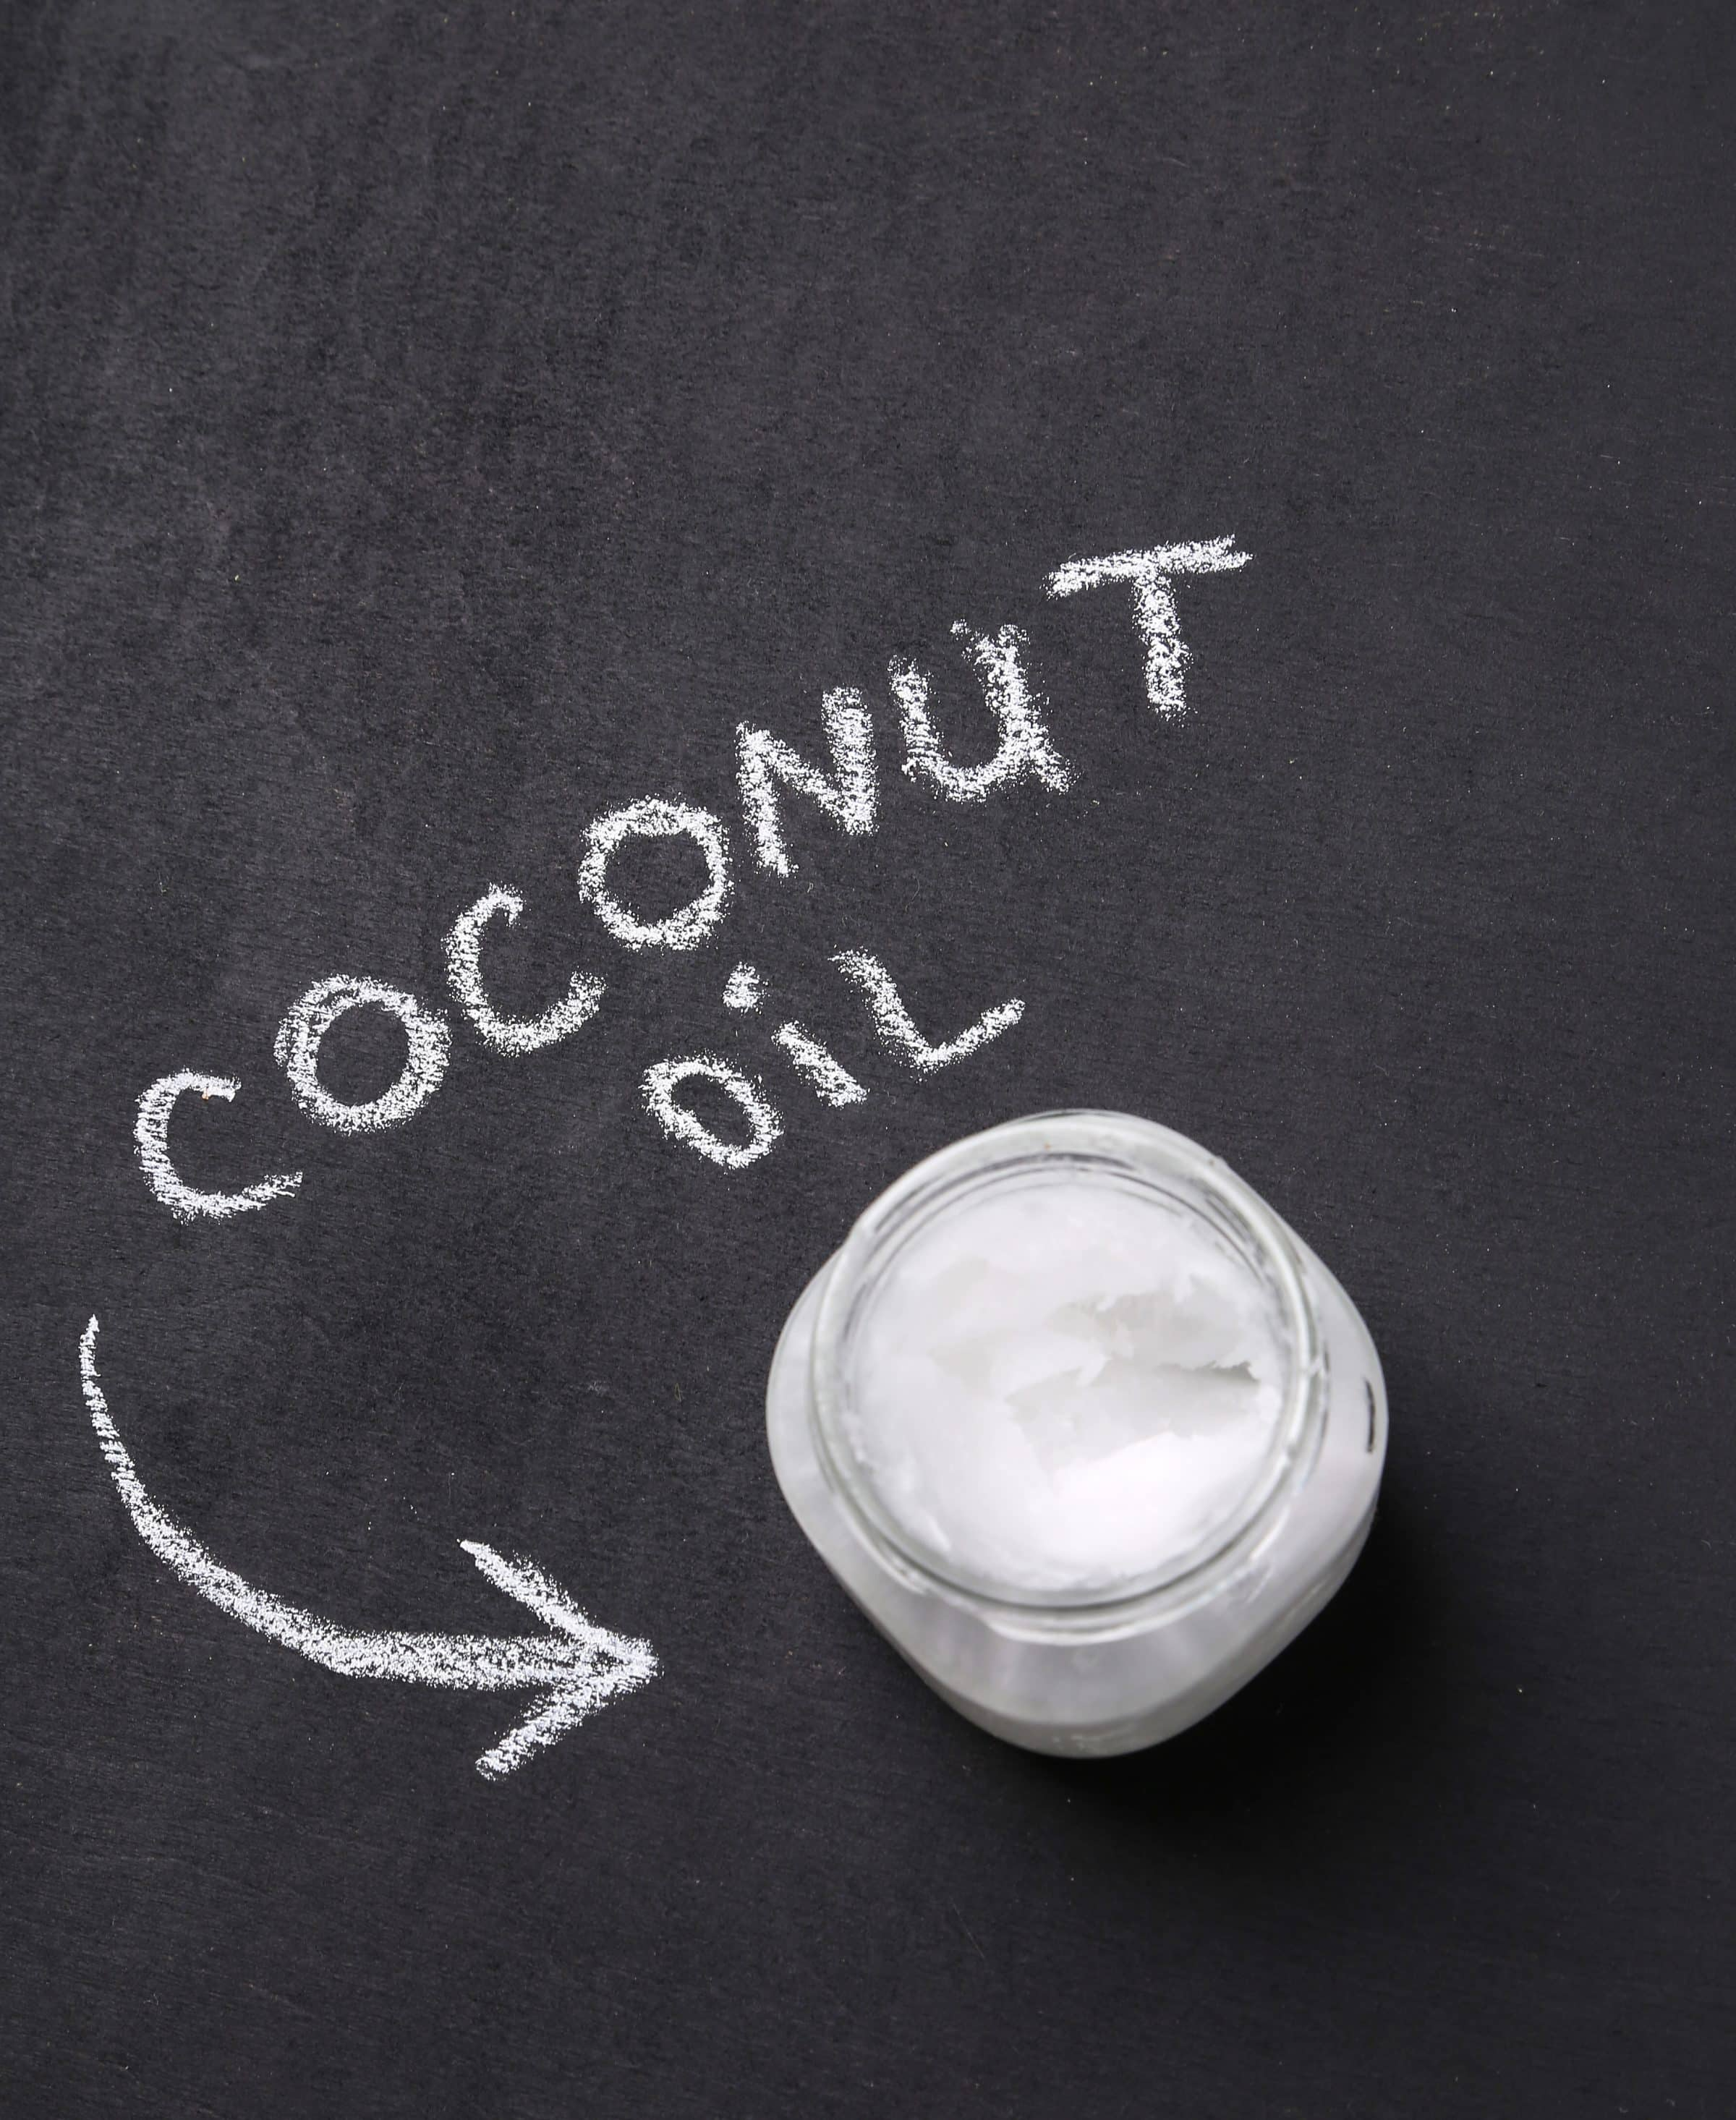 Other uses for coconut oil, this post will tell youhow to use coconut oil for hair, skin, as a deodorant, and so much more.